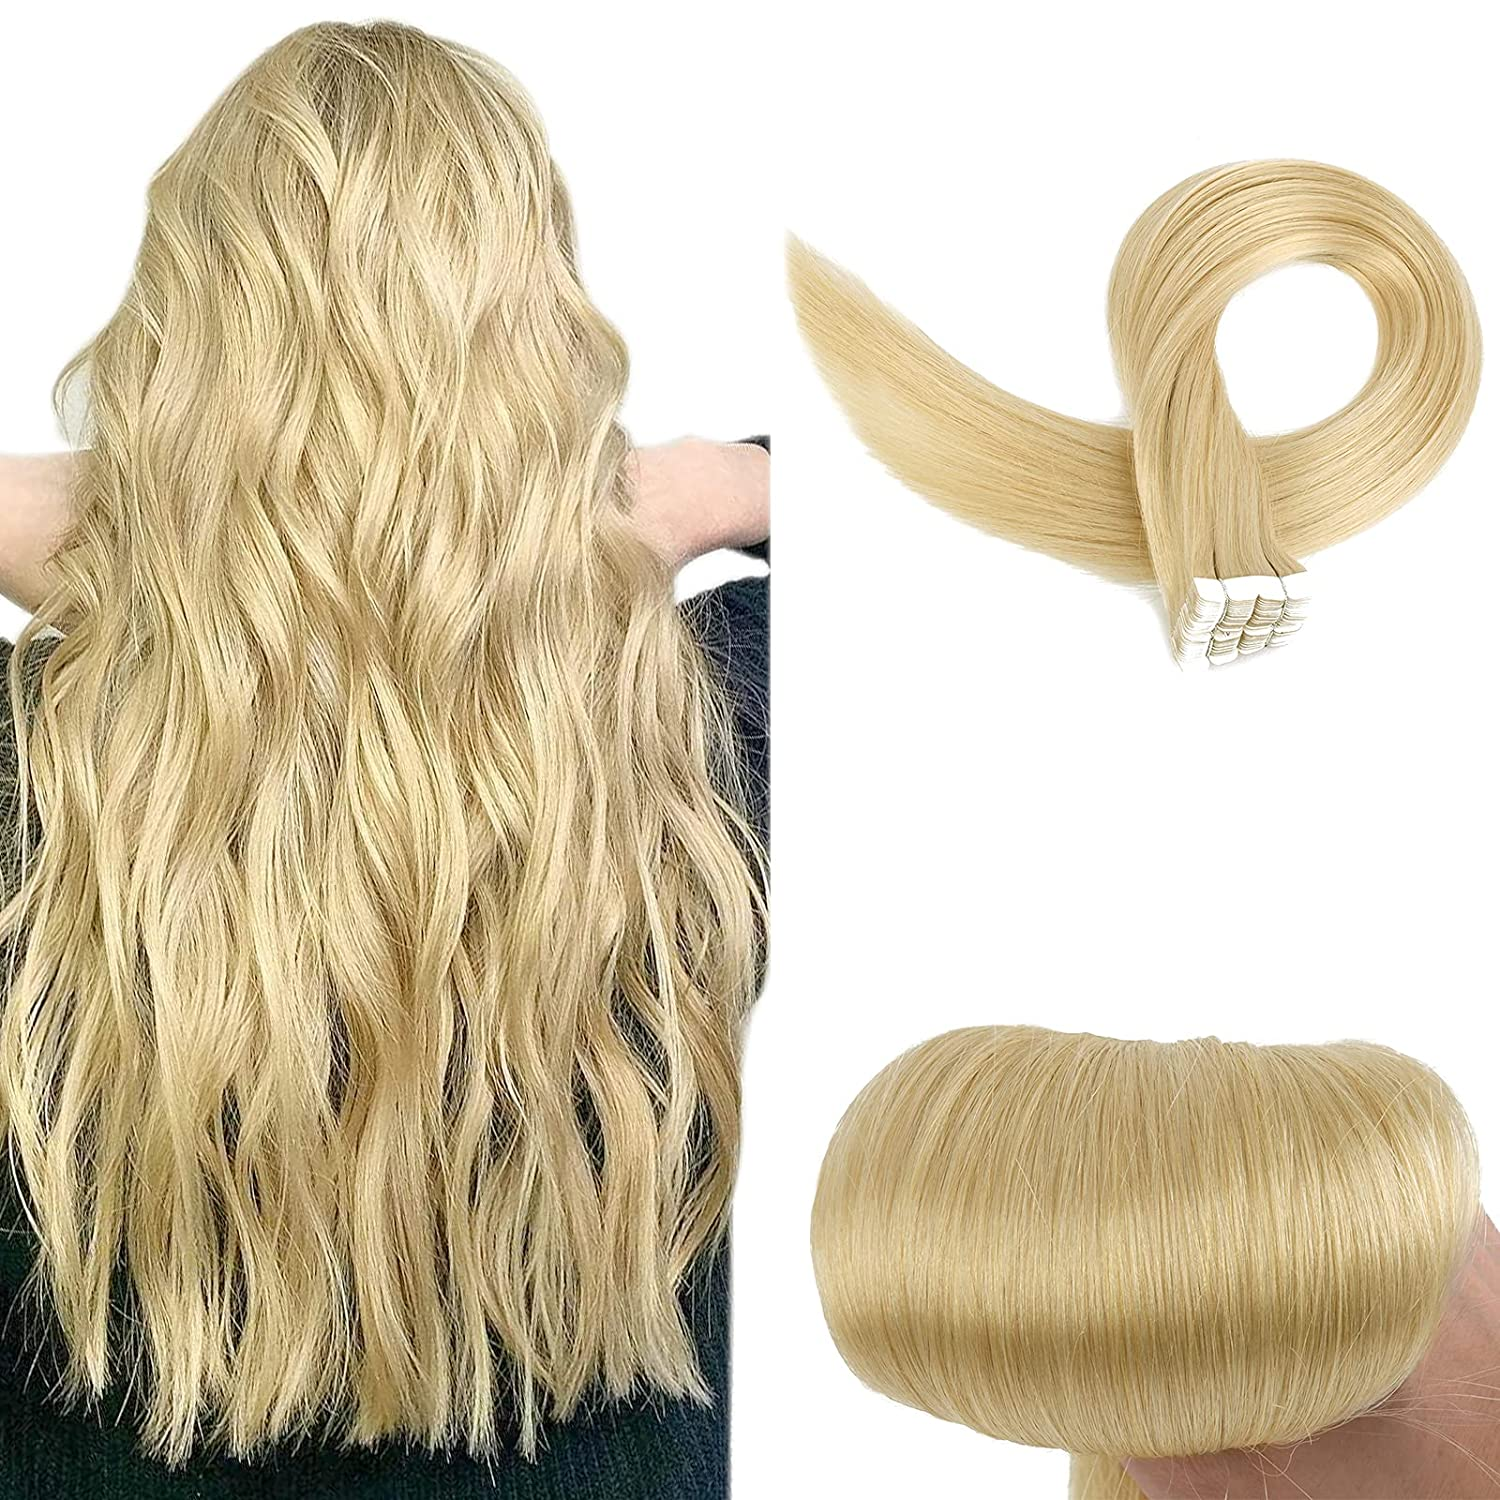 icymay Human Hair Extensions Price reduction Tape Ranking TOP16 in Golden Real Na Blonde Light